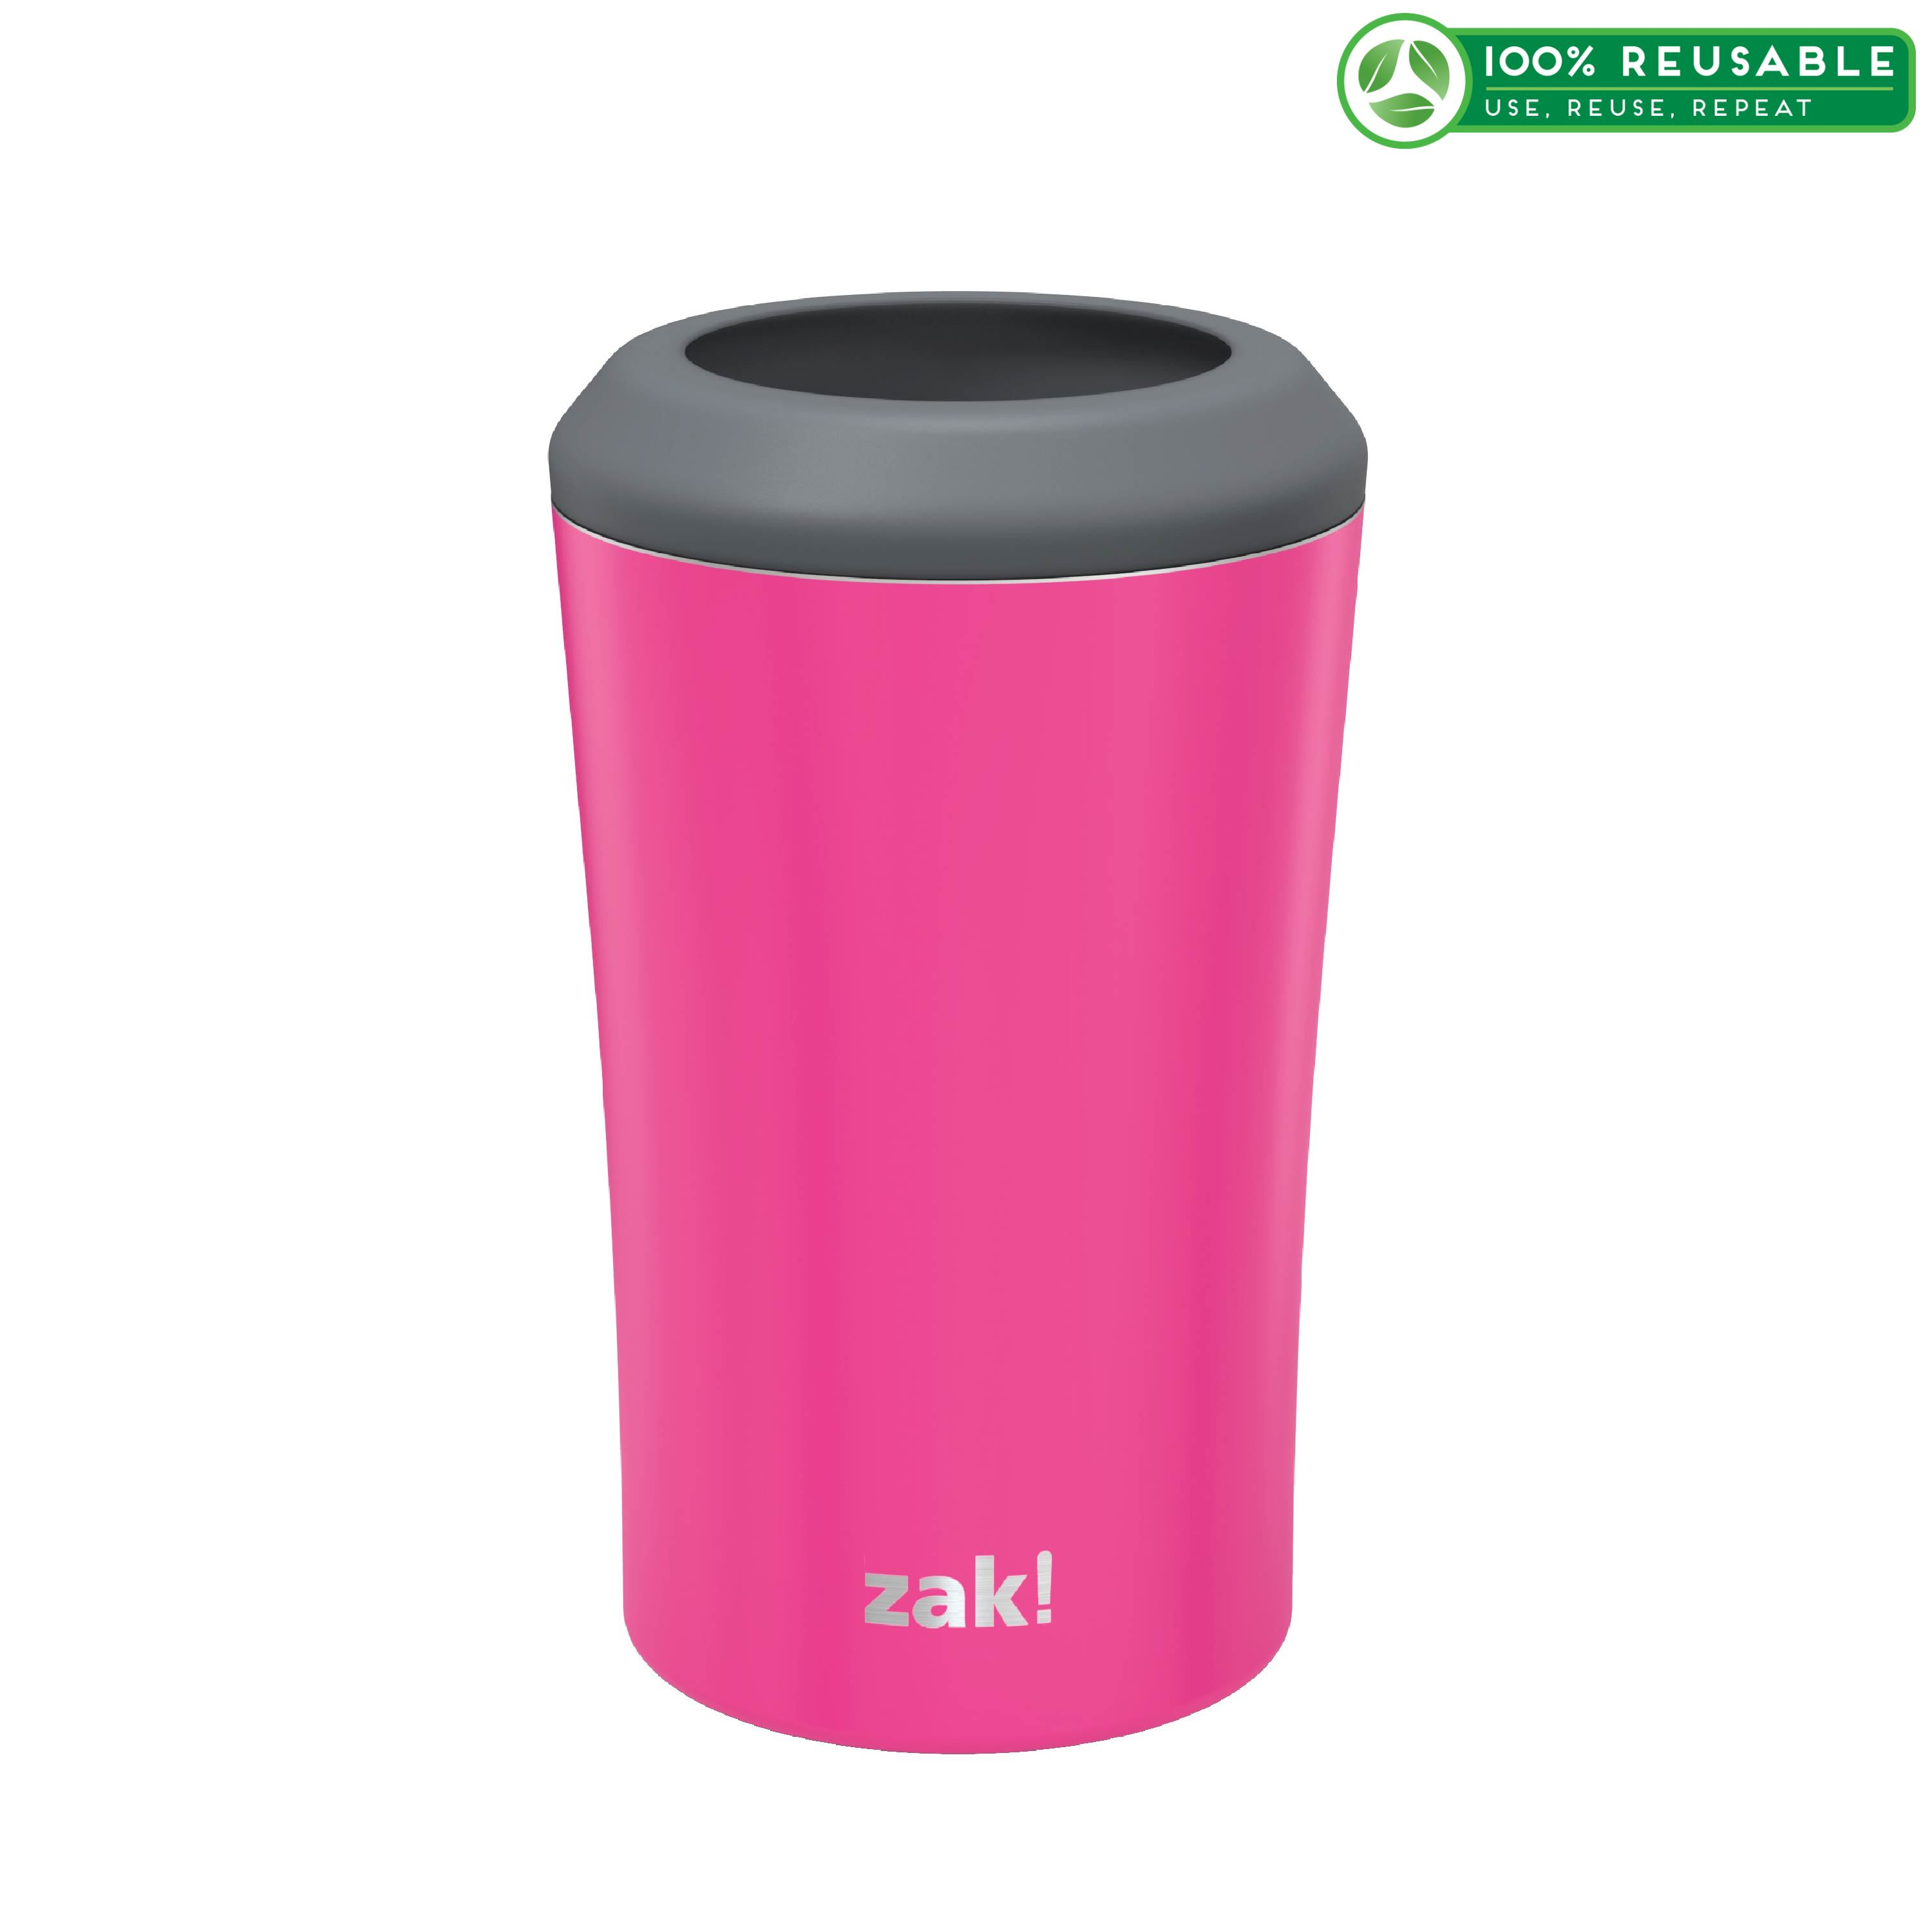 Zak Hydration 12 ounce Double Wall Stainless Steel Can and Bottle Cooler with Vacuum Insulation, Raspberry slideshow image 1